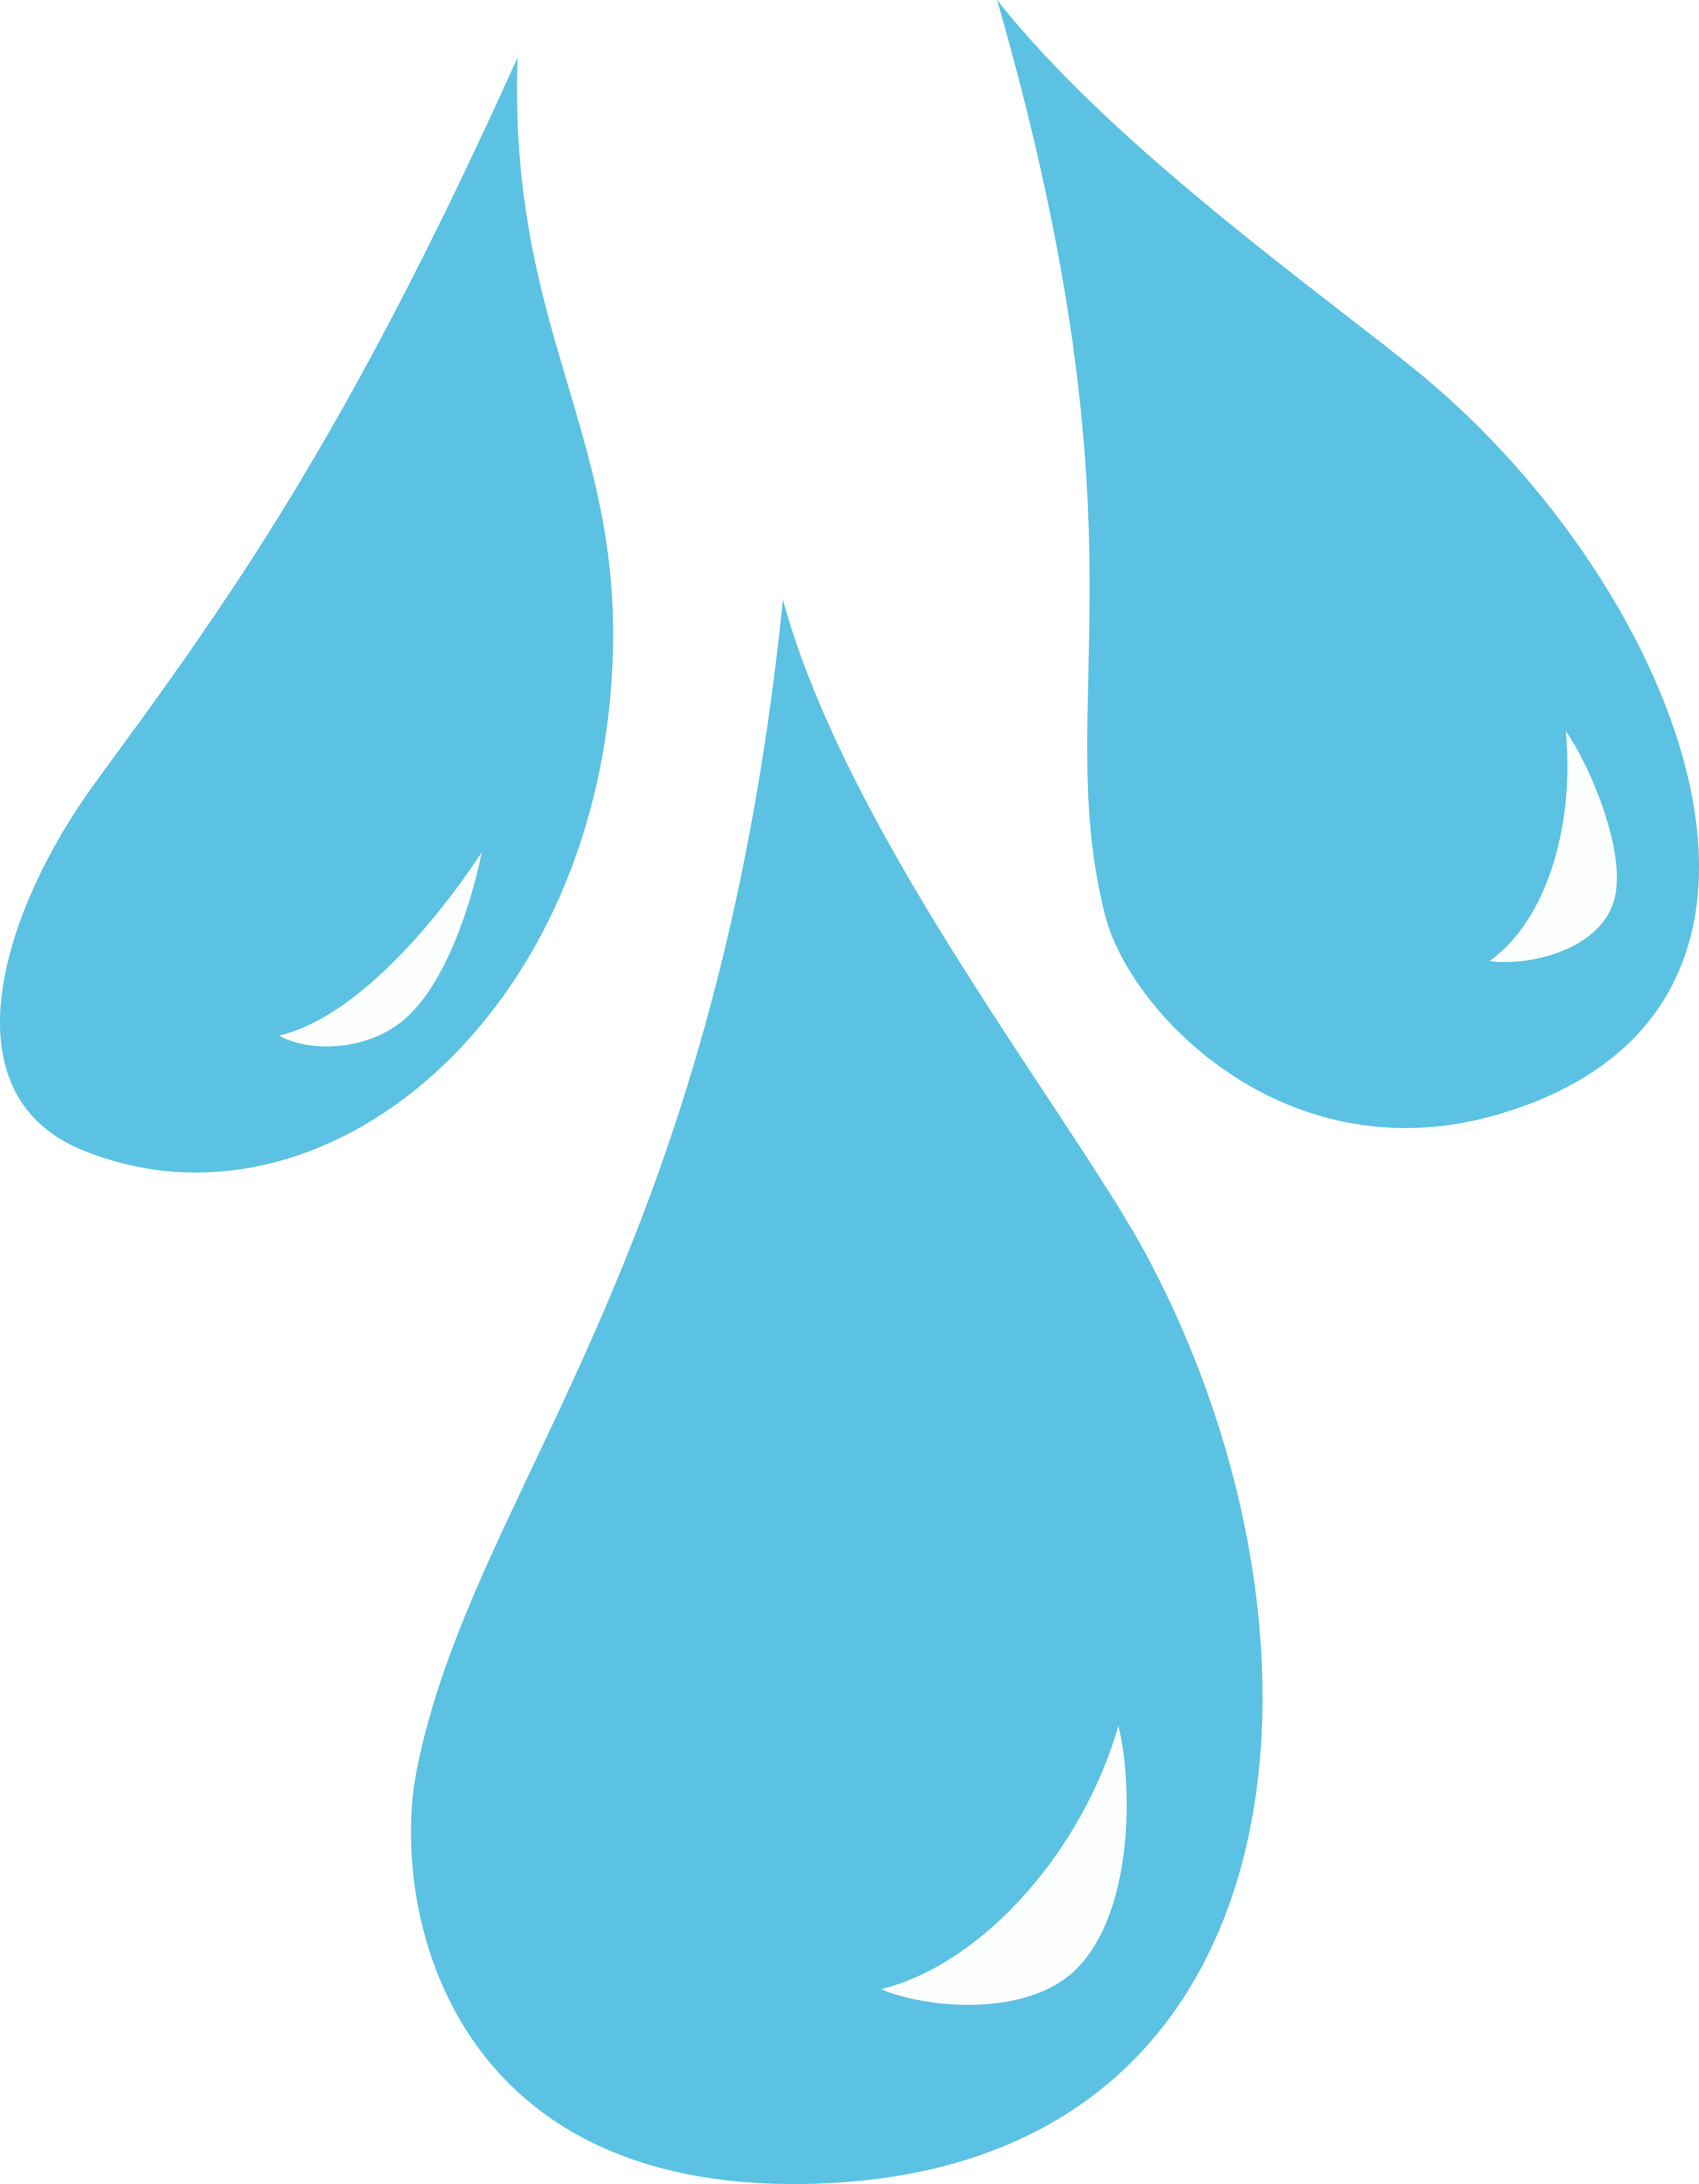 Water clipart shape. Free cliparts download clip